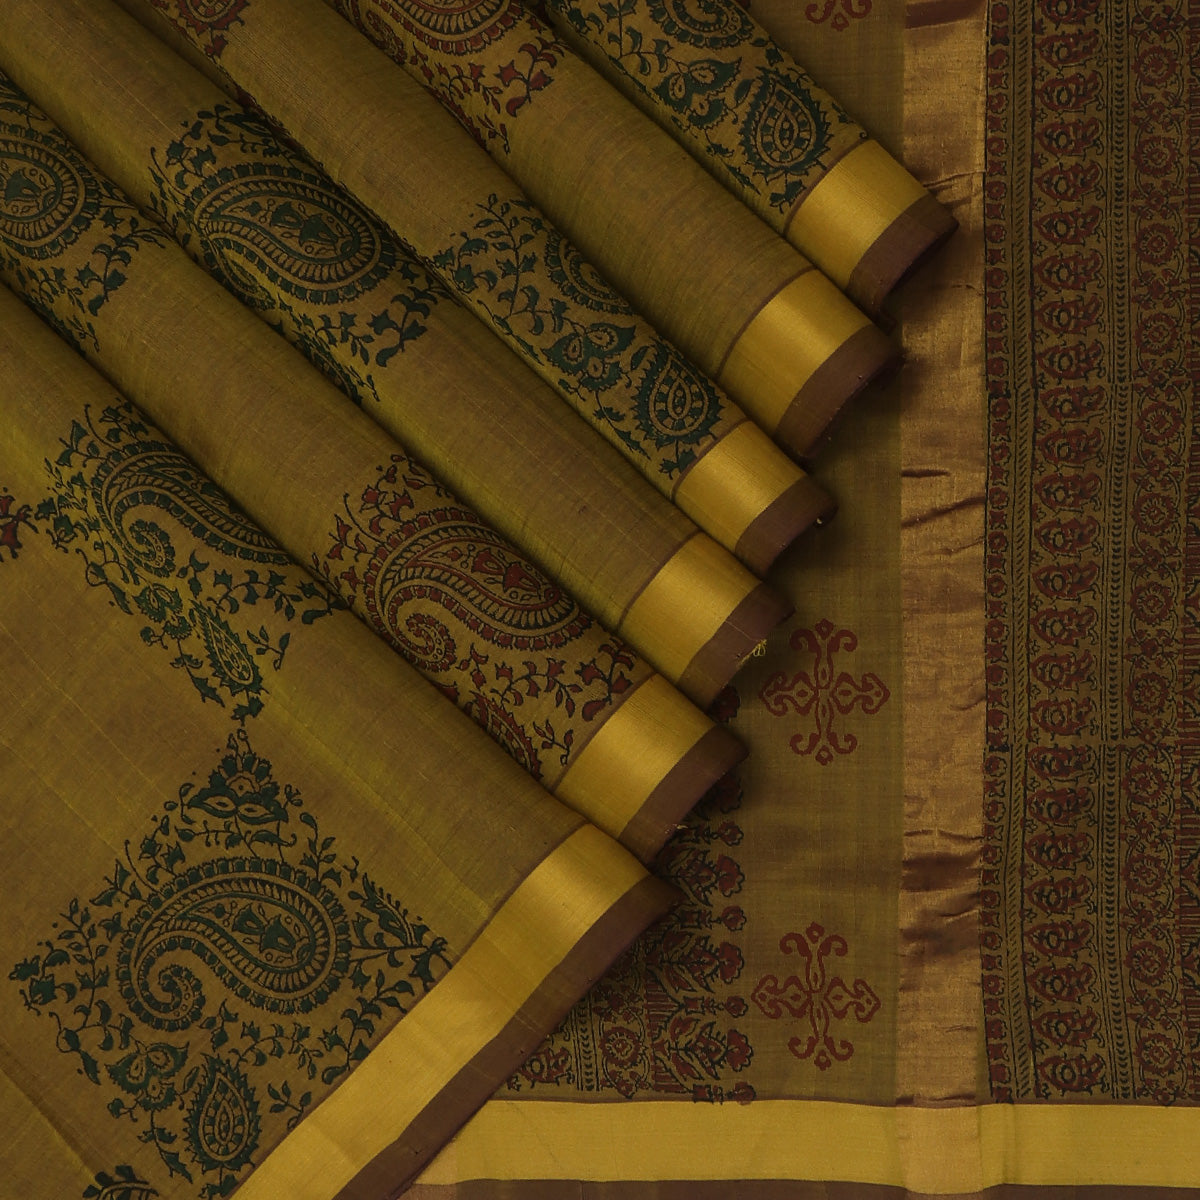 Printed Silk Cotton Saree-Dual Shade of Army Green with Zari border